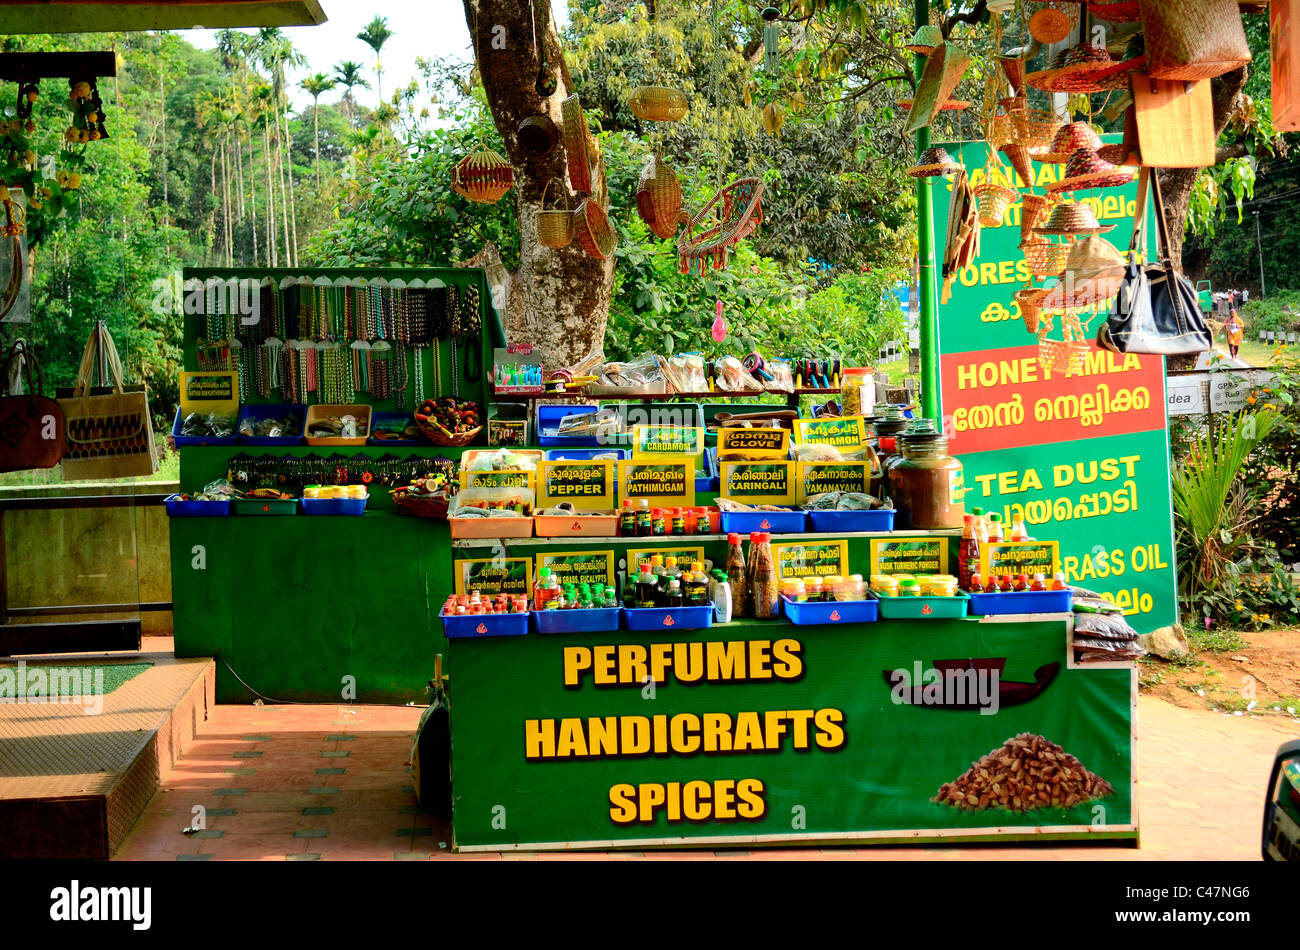 Spice and perfume outlet in India - Stock Image